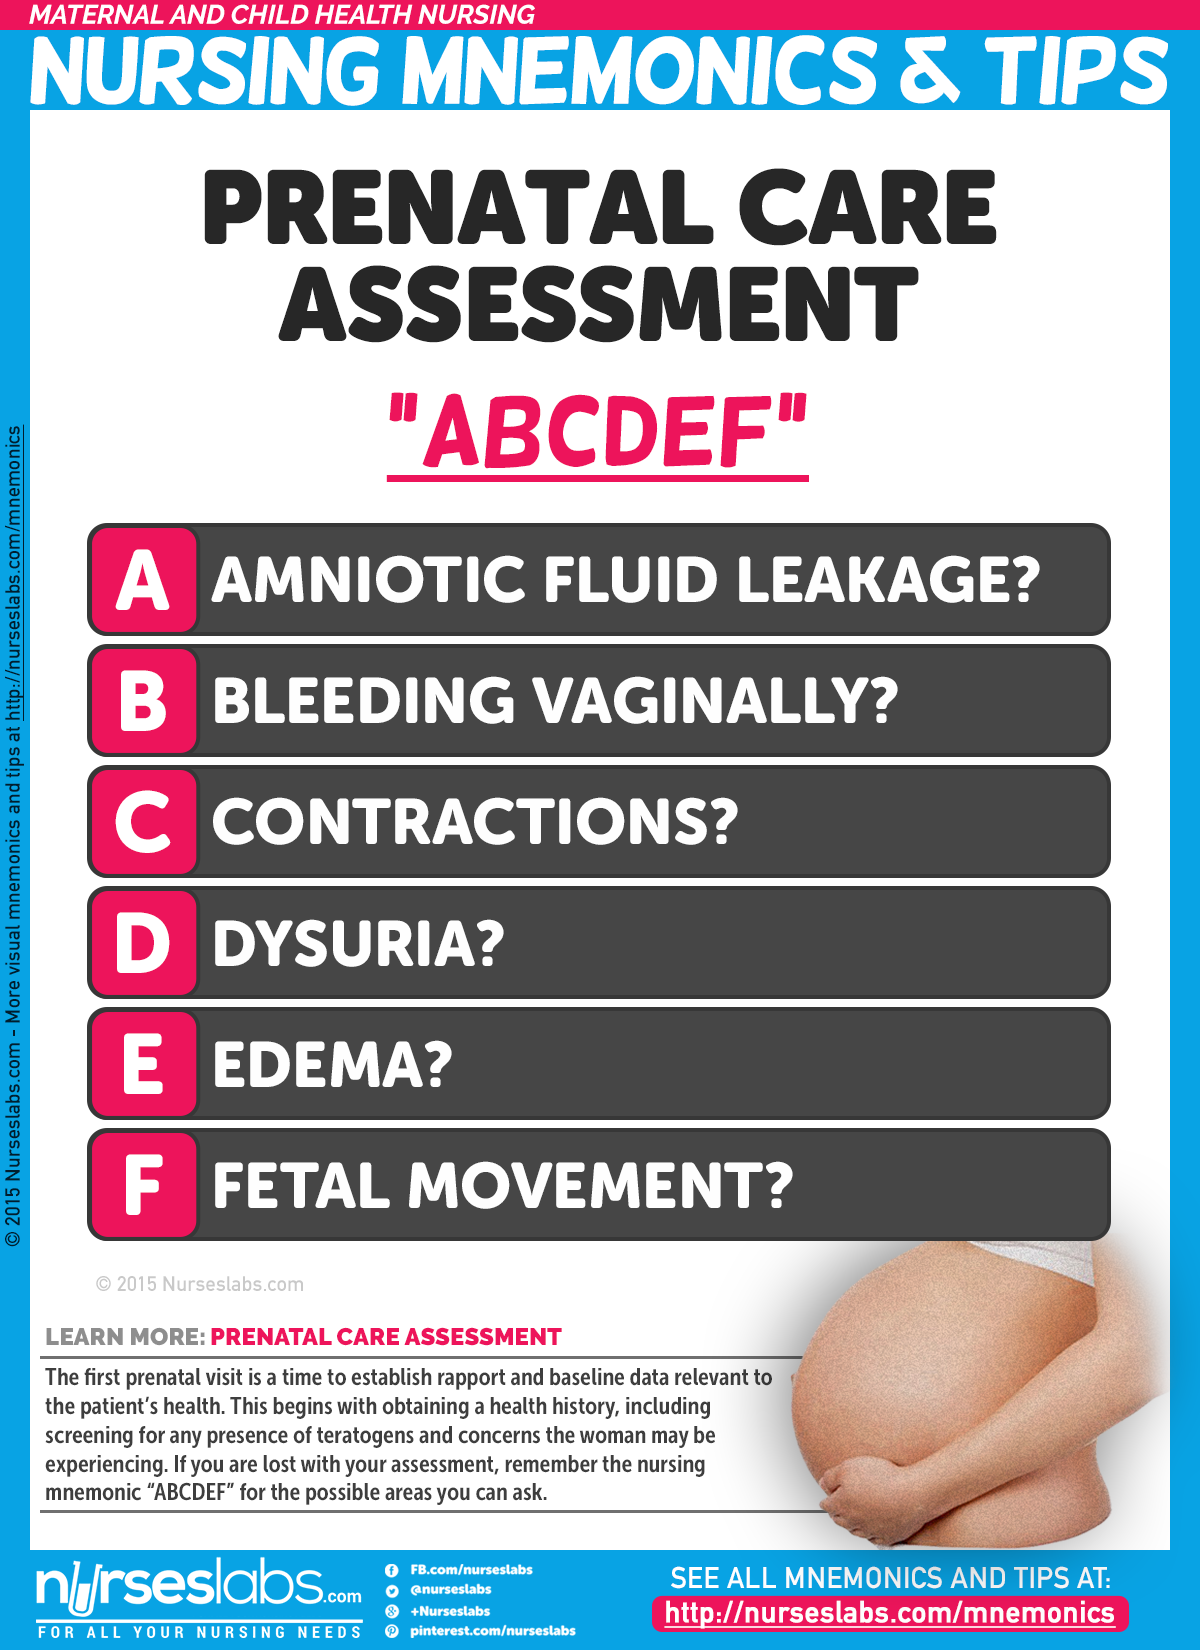 obstetrics nursing assessment The need for a reliable and valid obstetric triage tool is crucial to eliminate time delays, not just patient to initial nursing assessment time, but patient to provider delays with these main outcome measures in mind, the reliability of the obstetric triage acuity scale (otas) was tested in 2011 ( smithson et al, 2013 .